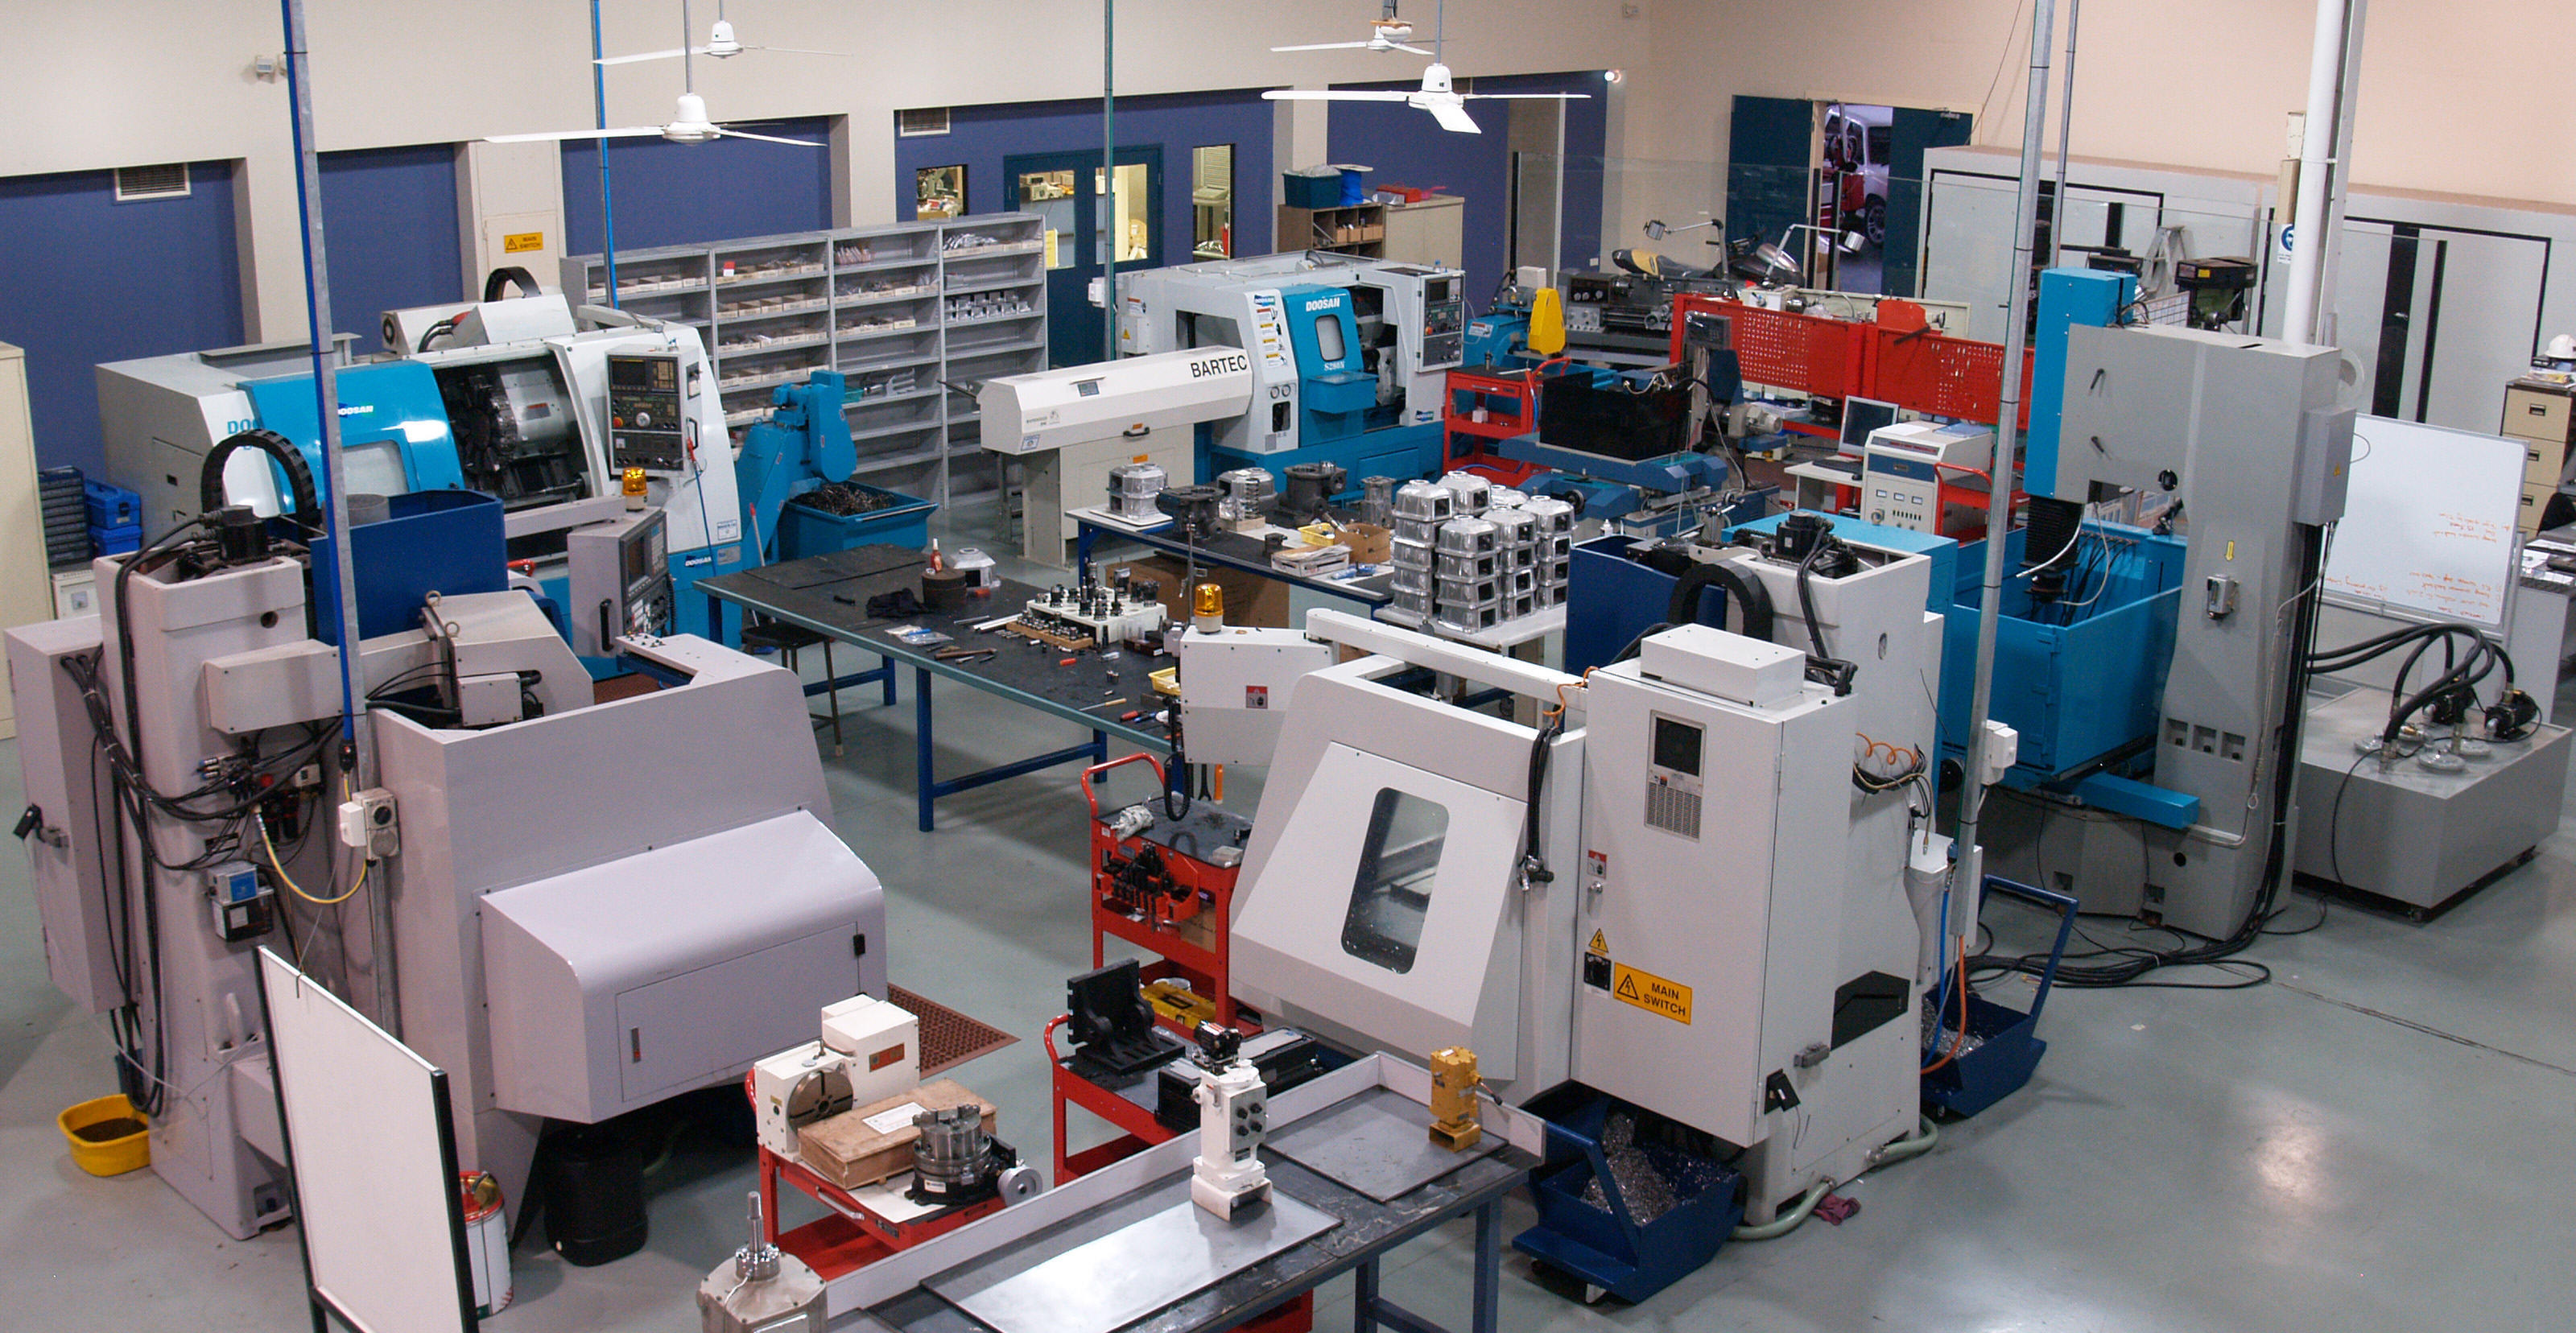 Shop And Machine Shops Are Also Available For Your Other Home And on manufacturing facility